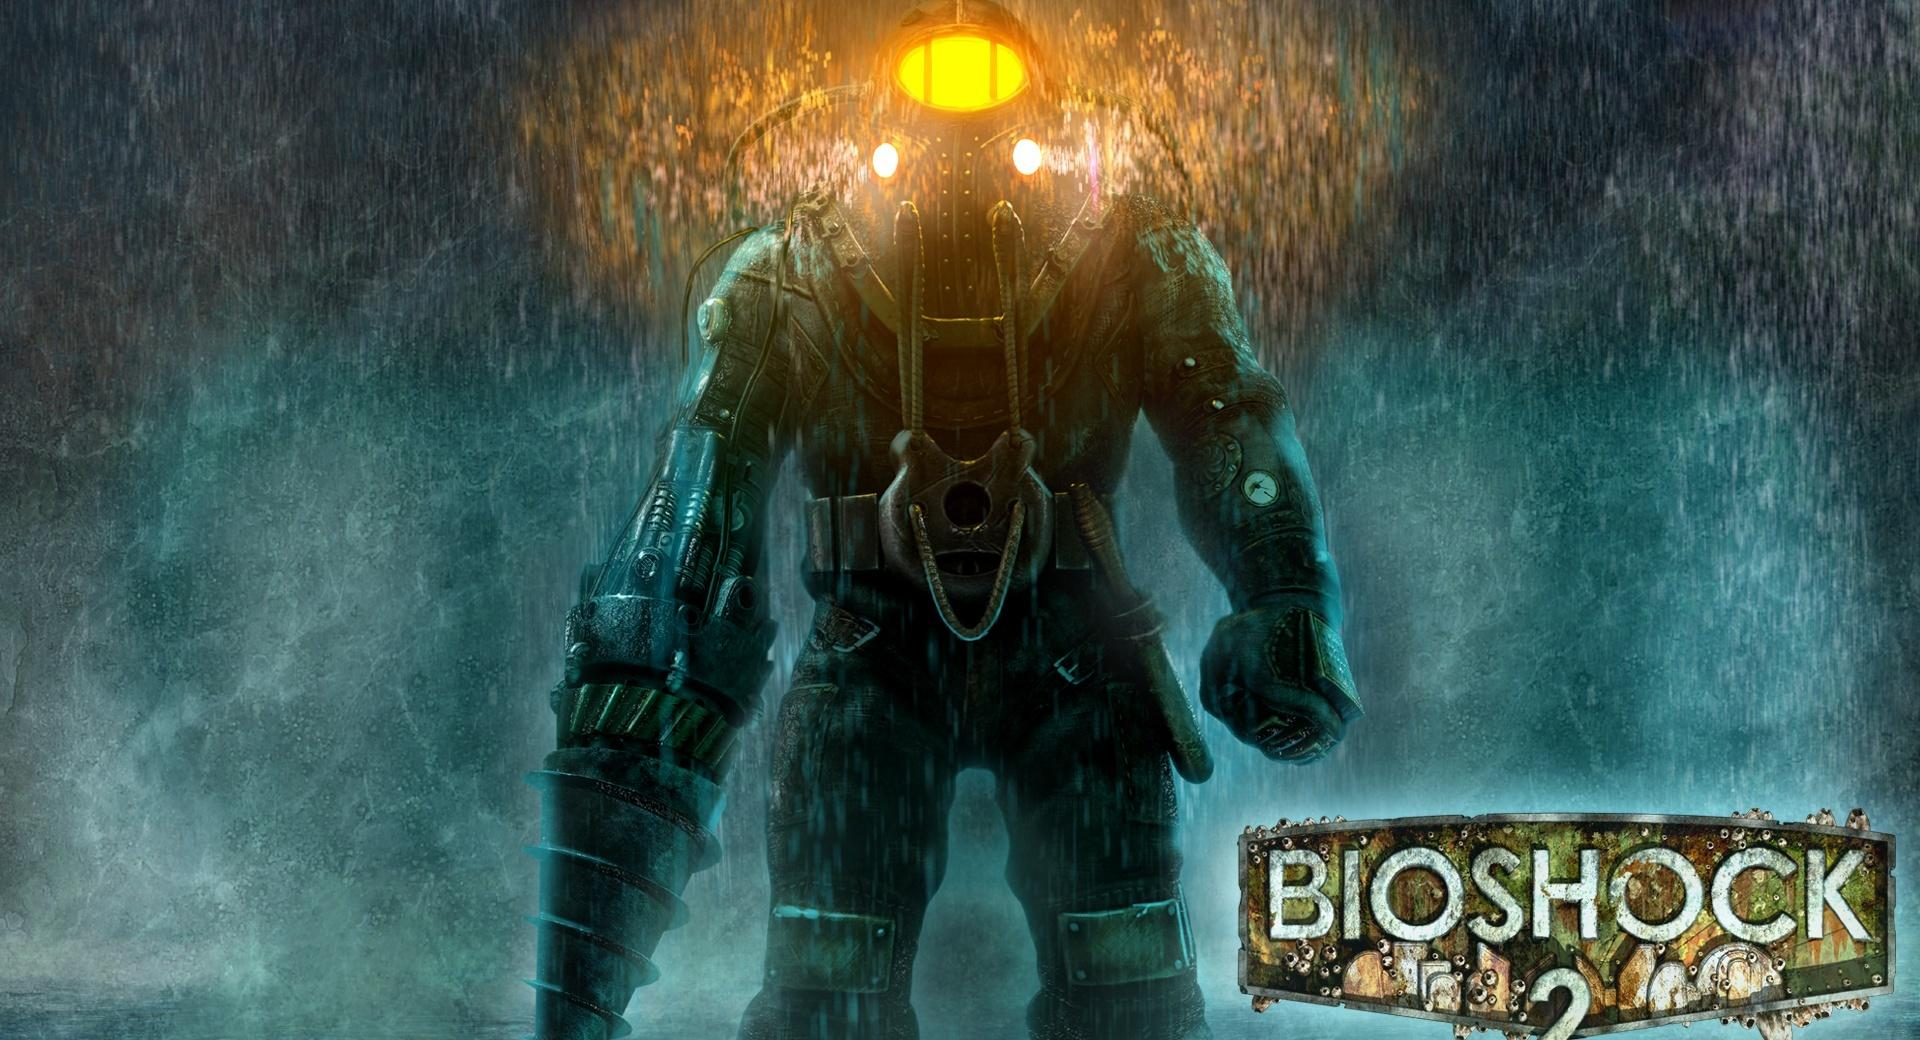 Bioshock 2 Rain wallpapers HD quality